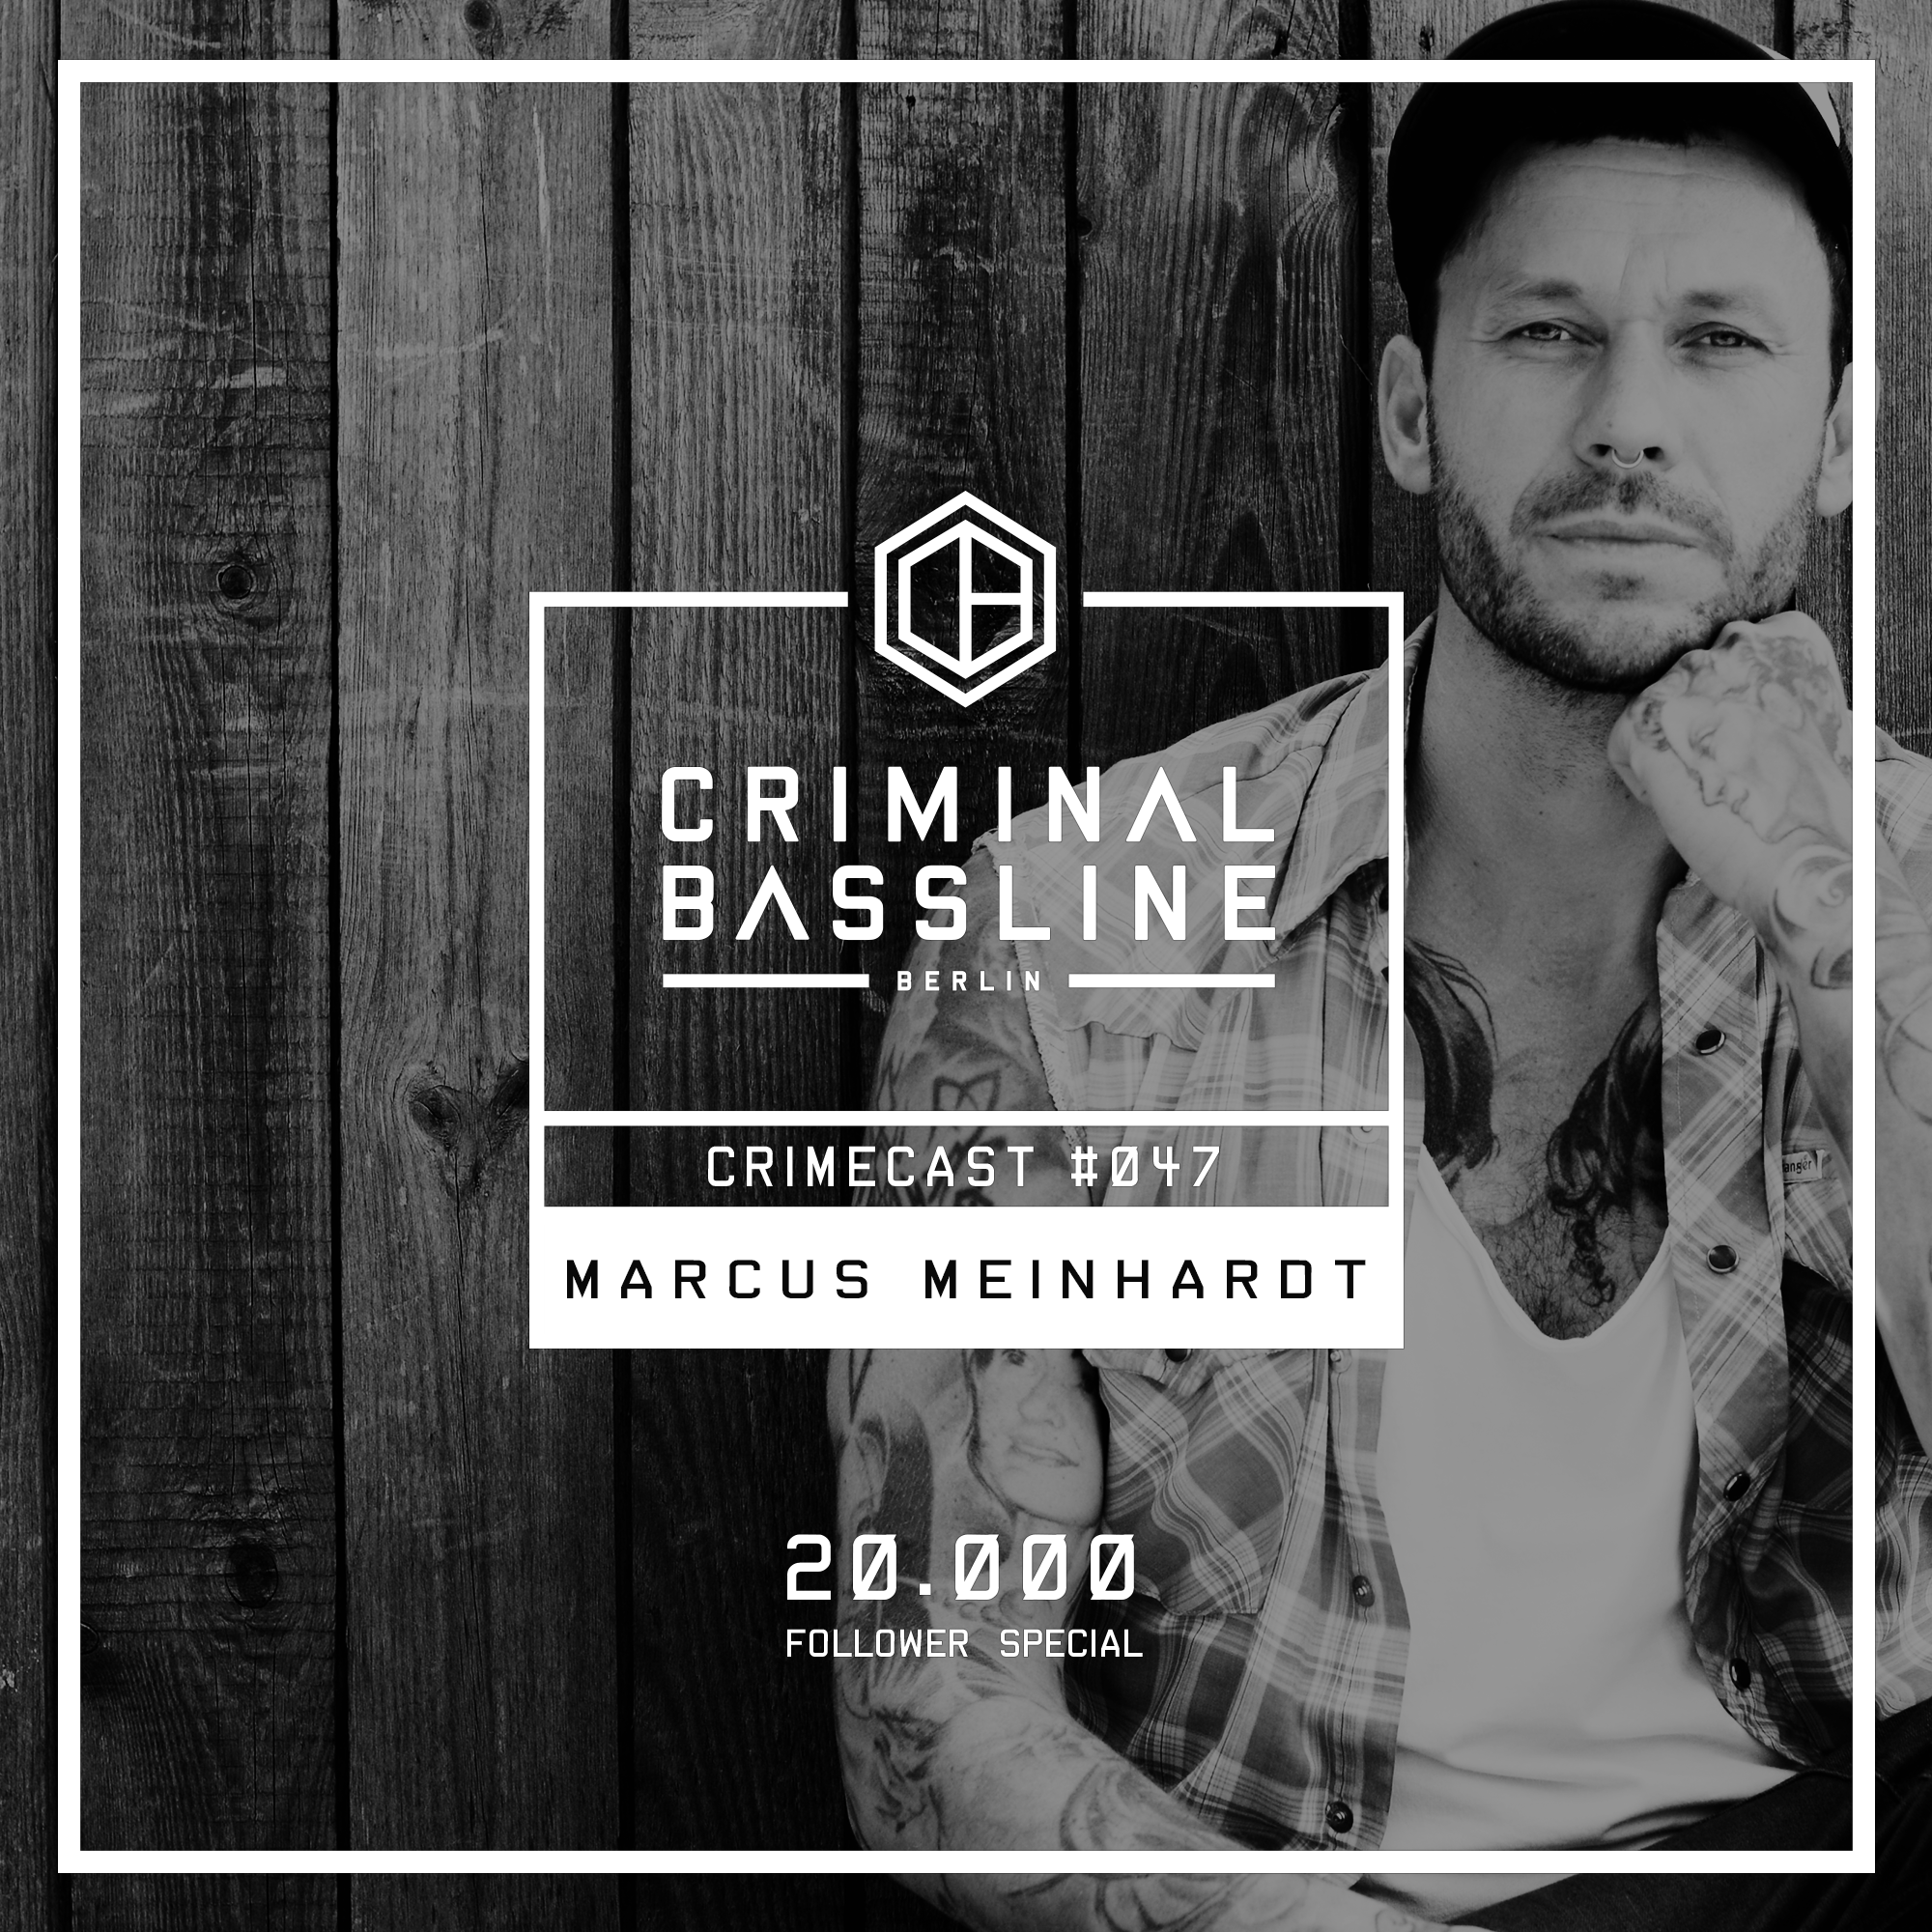 MIX: MARCUS MEINHARDT | CRIMECAST #047 | 20.000 Follower Special